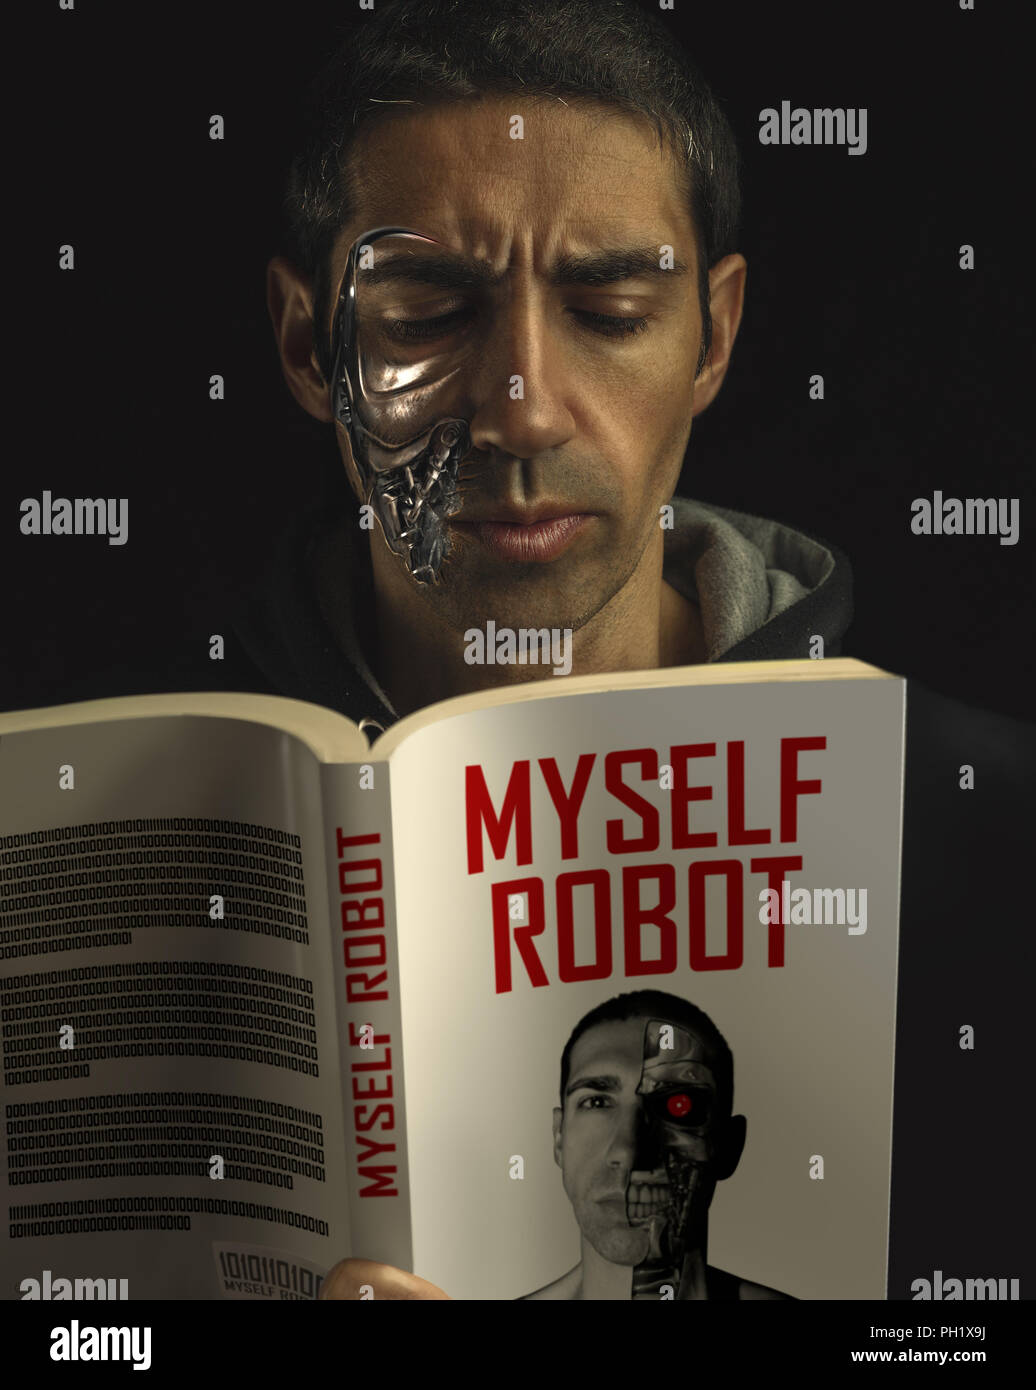 Robot man reading a Science Fiction book about himself. - Stock Image